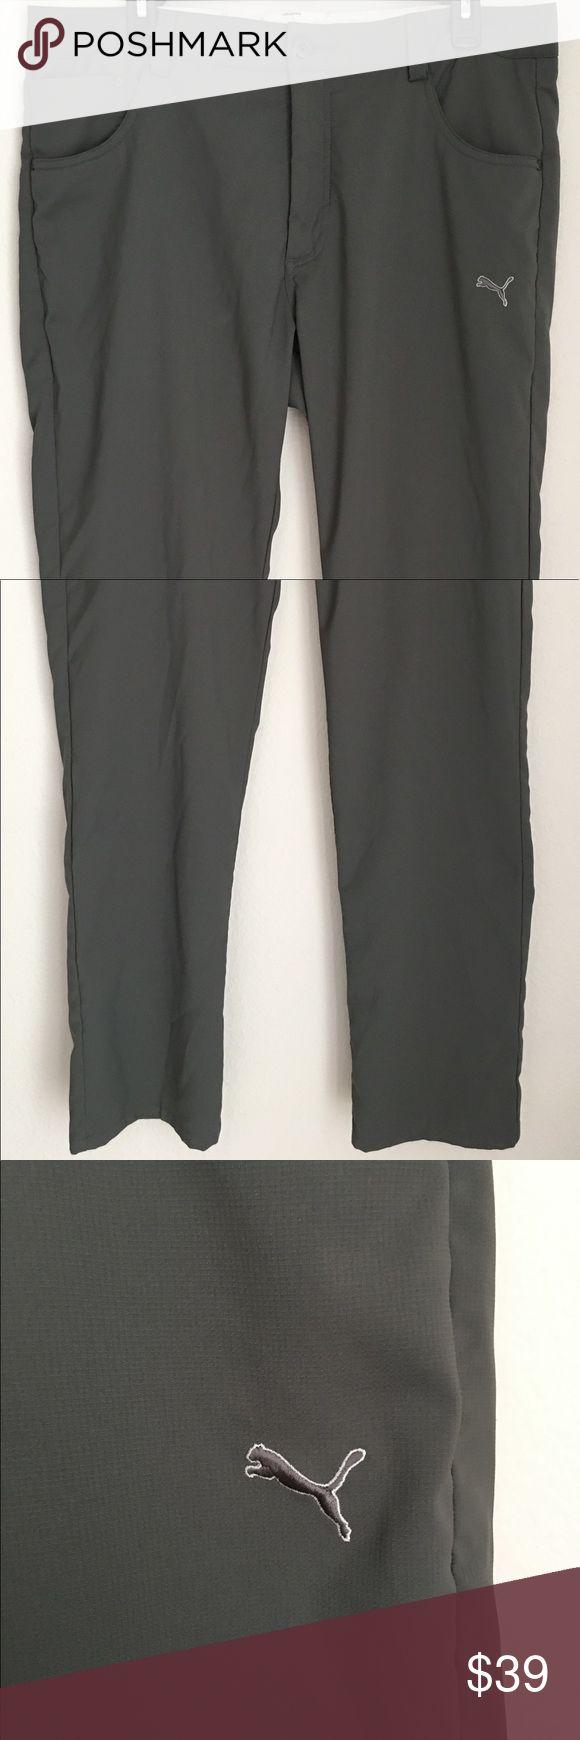 Puma Sport Lifestyle Dry Cell Golf Pants Like new condition, Inseam 31 inches Pants